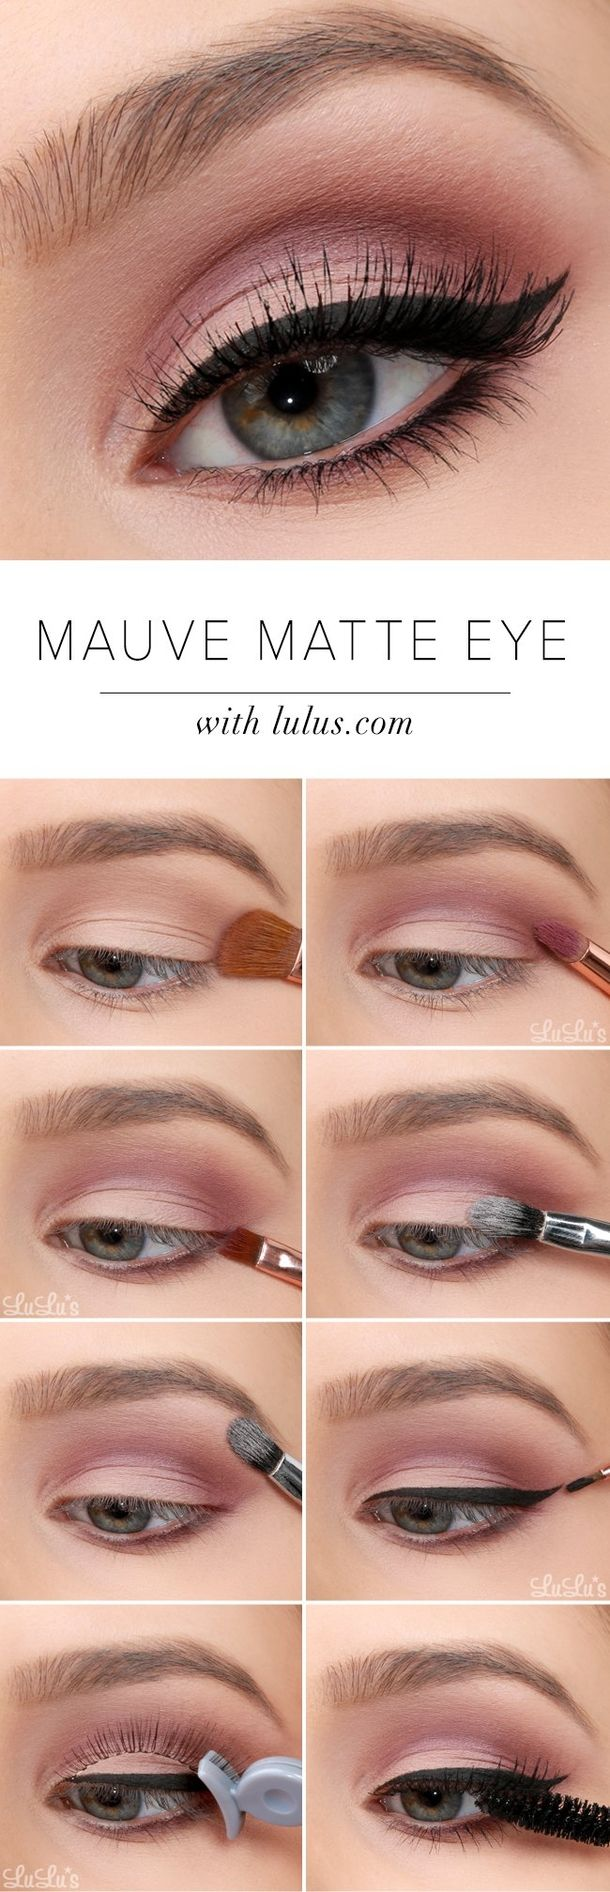 Want your makeup to look like all the professionals you see on tv, movies and magazines? We have 10 step by step makeup tutorials to make your makeup look like a pro!